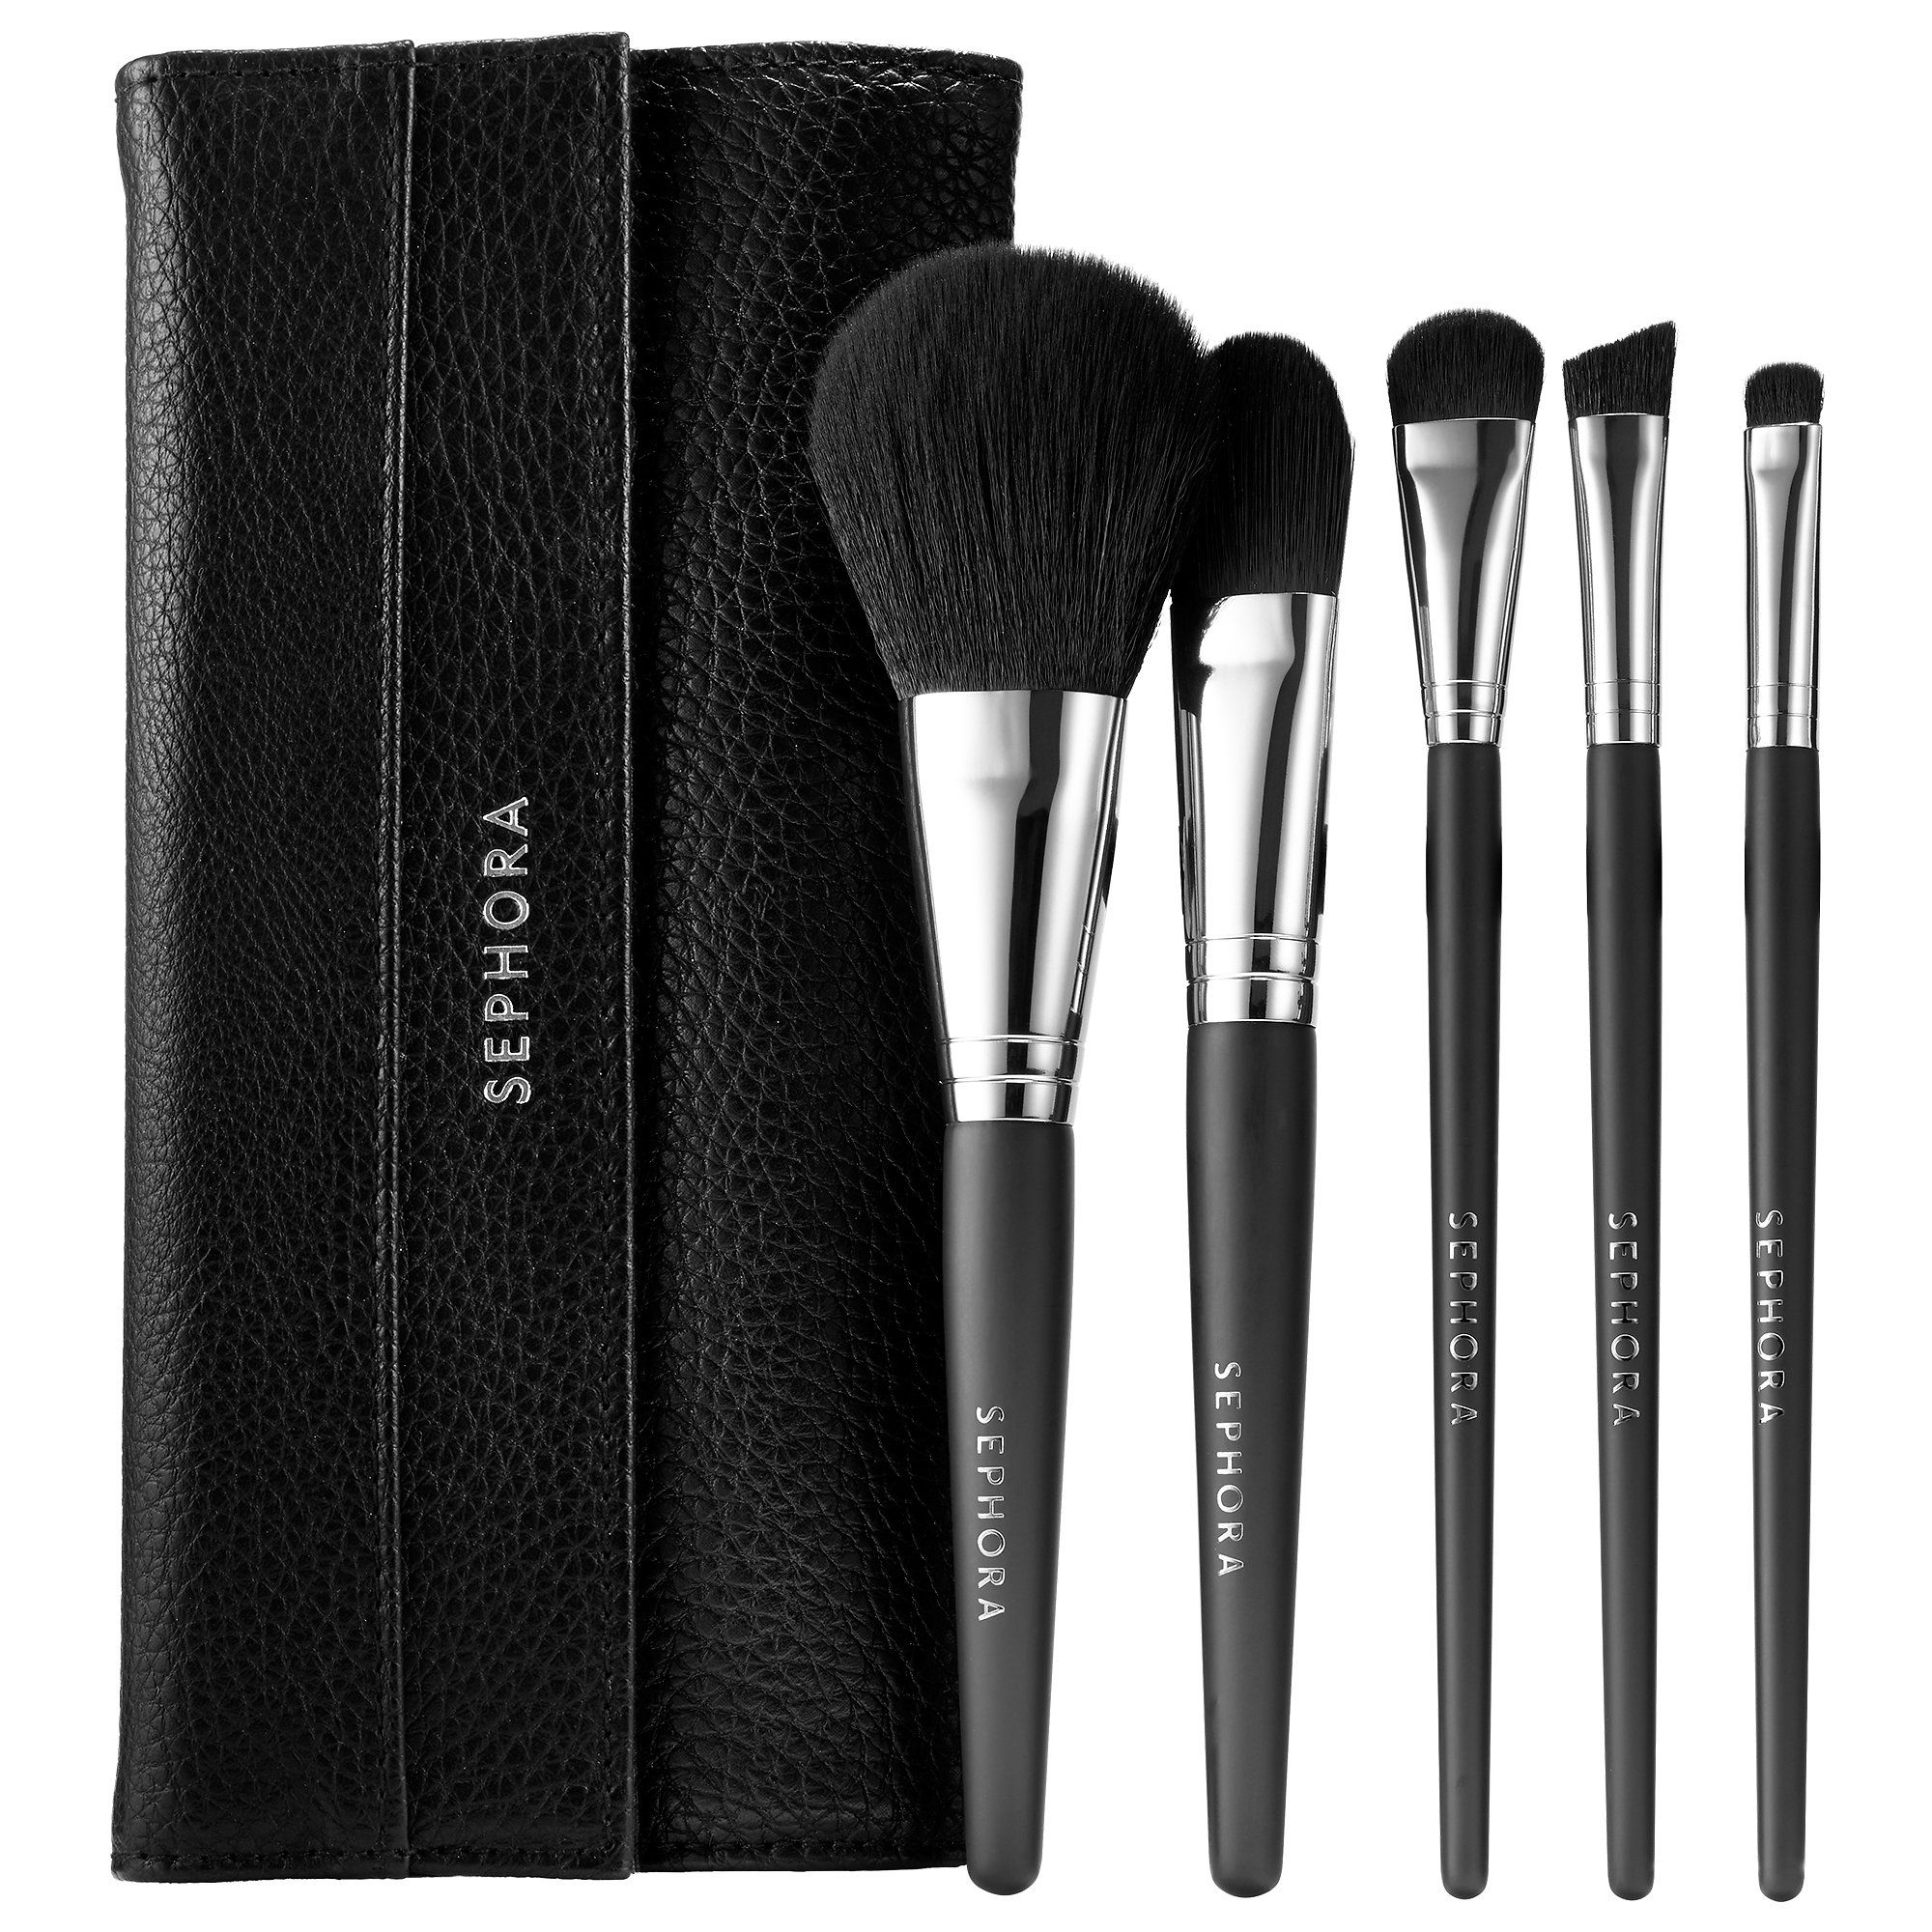 Shop the Face the Day Full Face Brush Set by SEPHORA